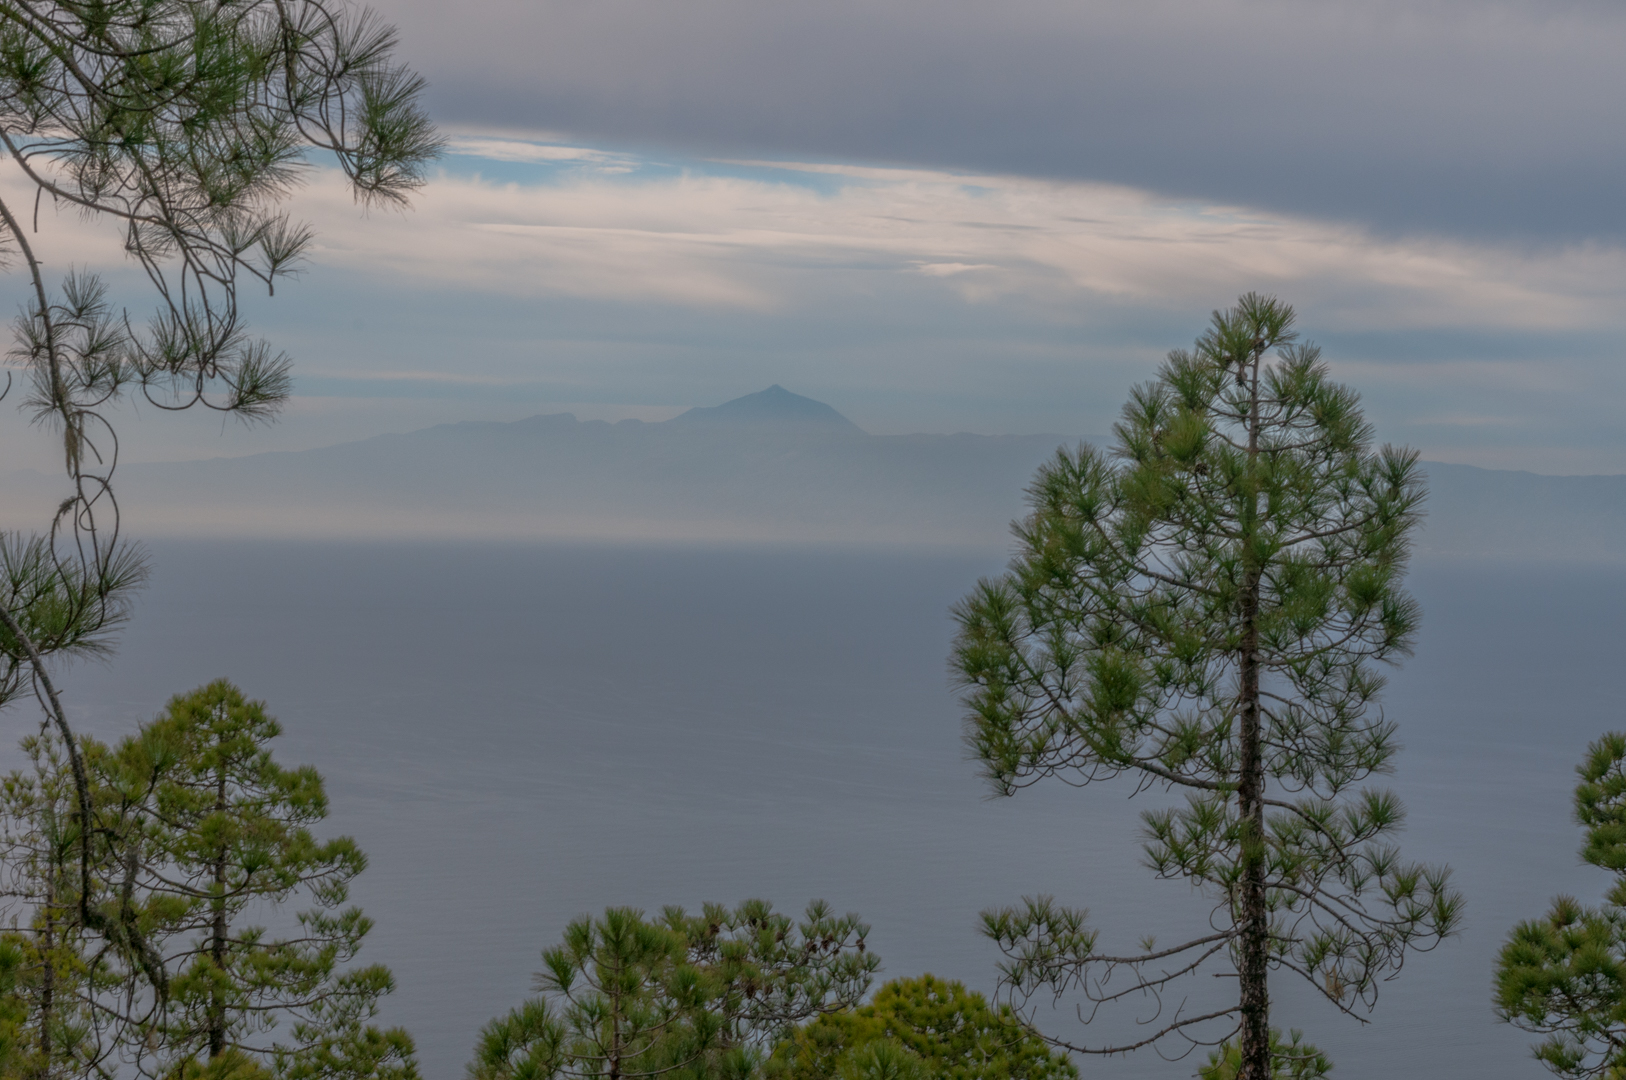 View on Tenerife from Gran Canaria